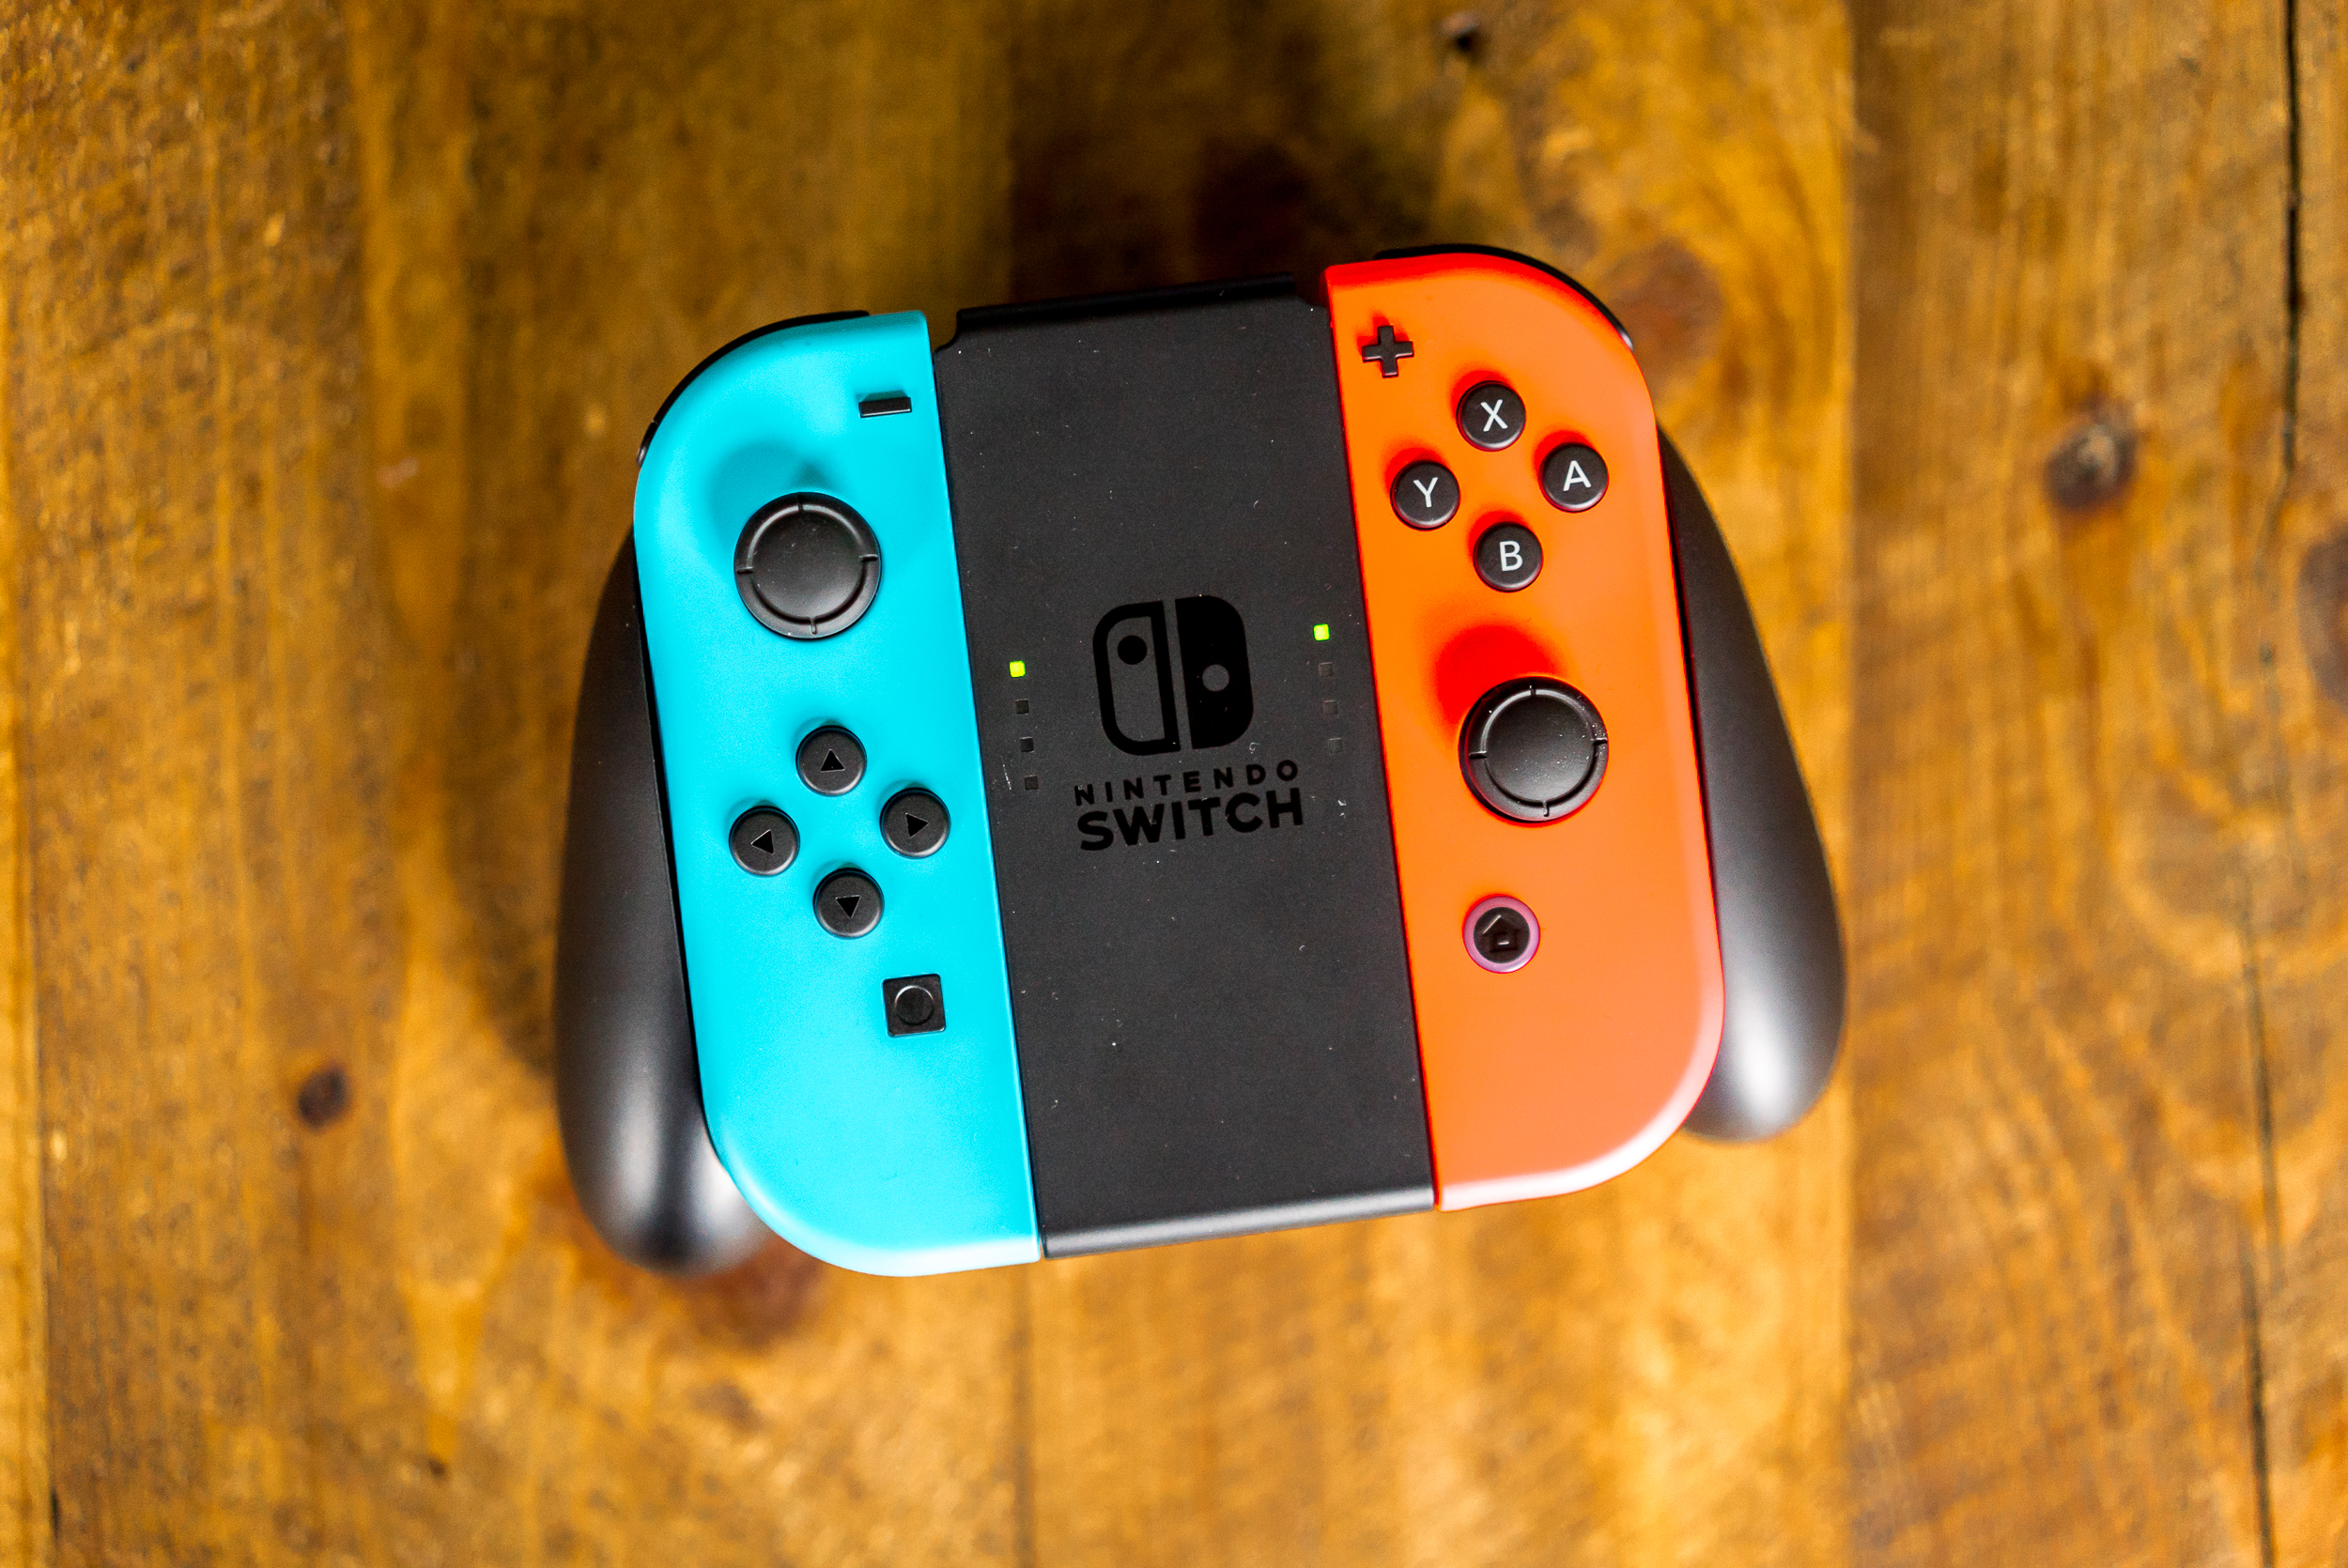 Nintendo's Switch Joy-Cons are still aren't cheap at today's deal price, but sales on the controllers have been few and far between in recent months.